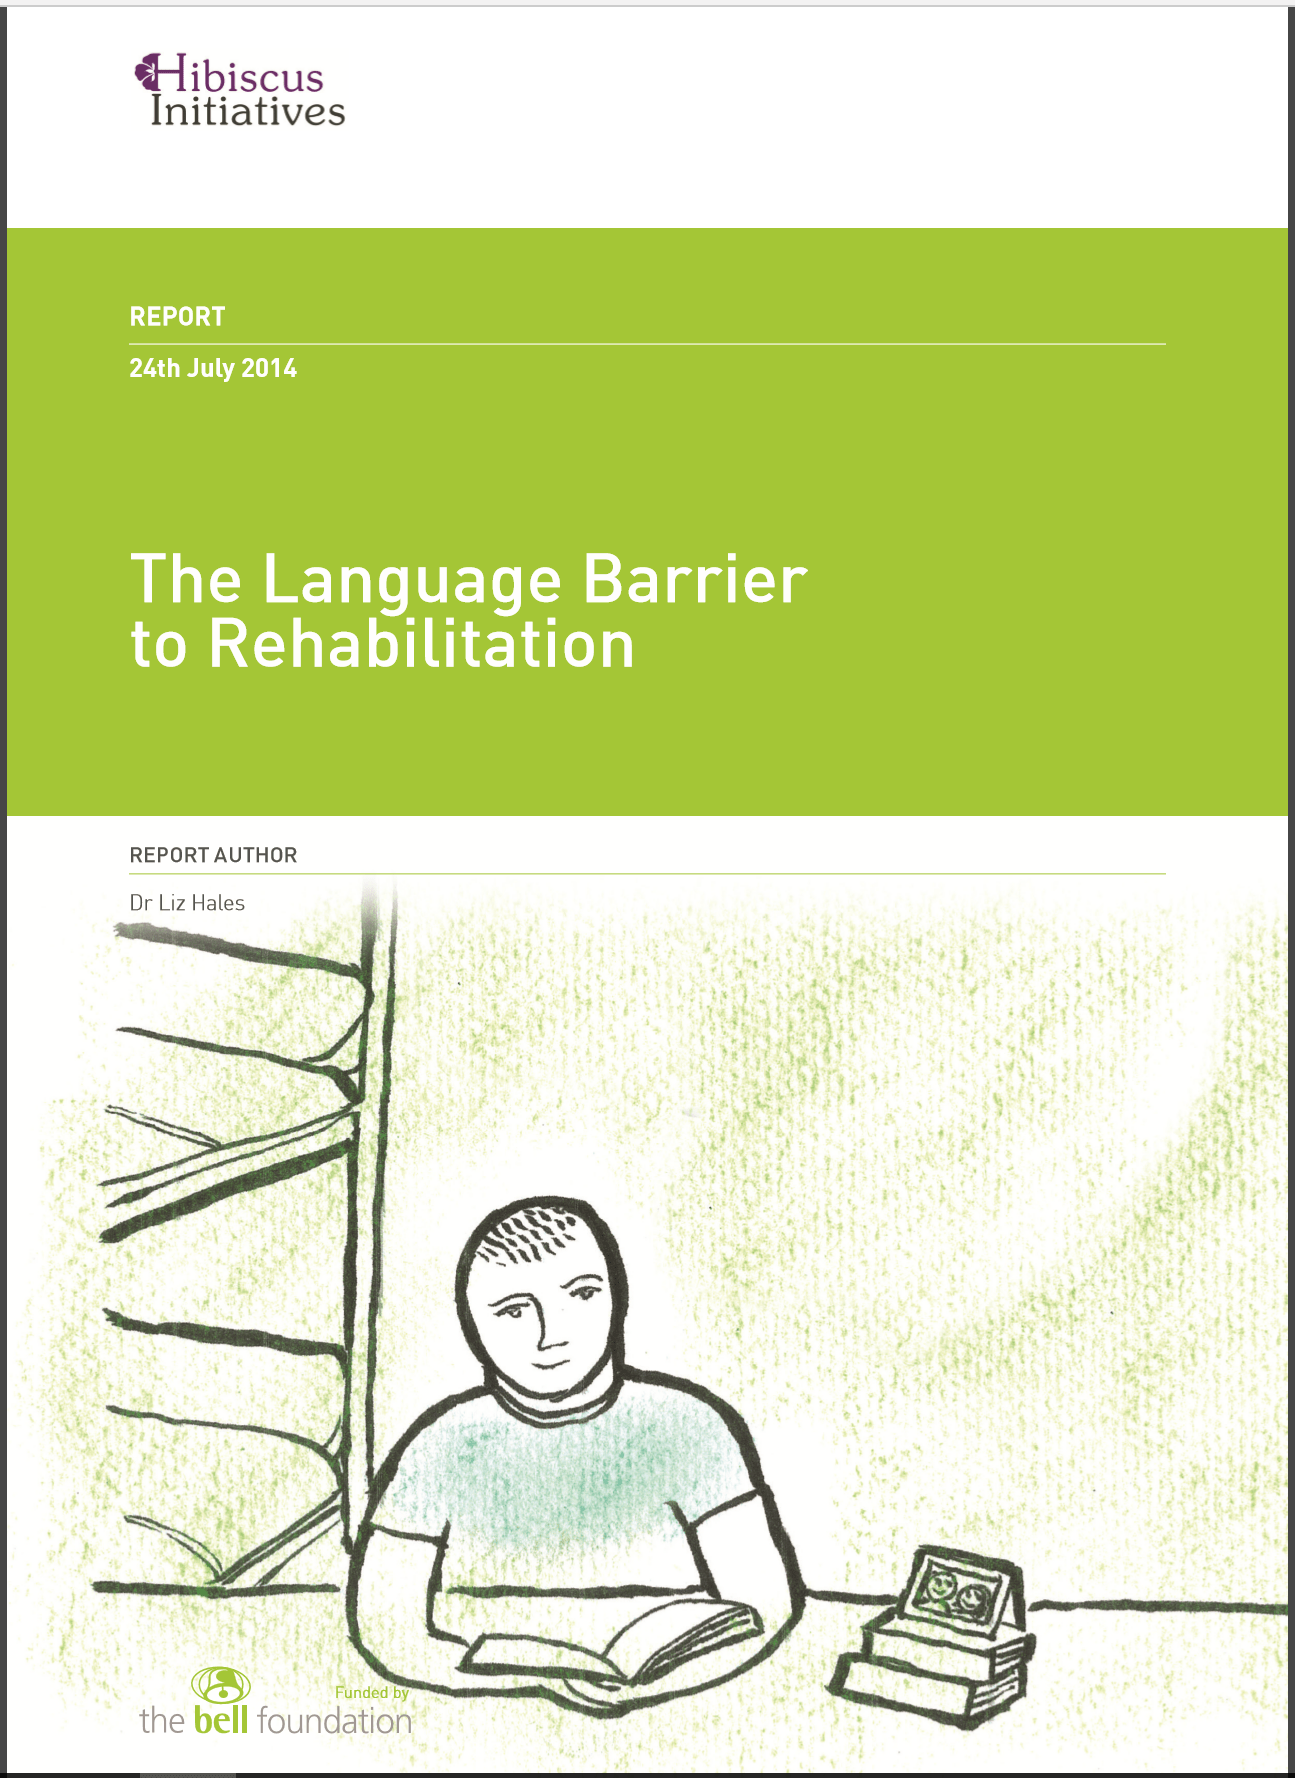 The Language Barrier to Rehabilitation